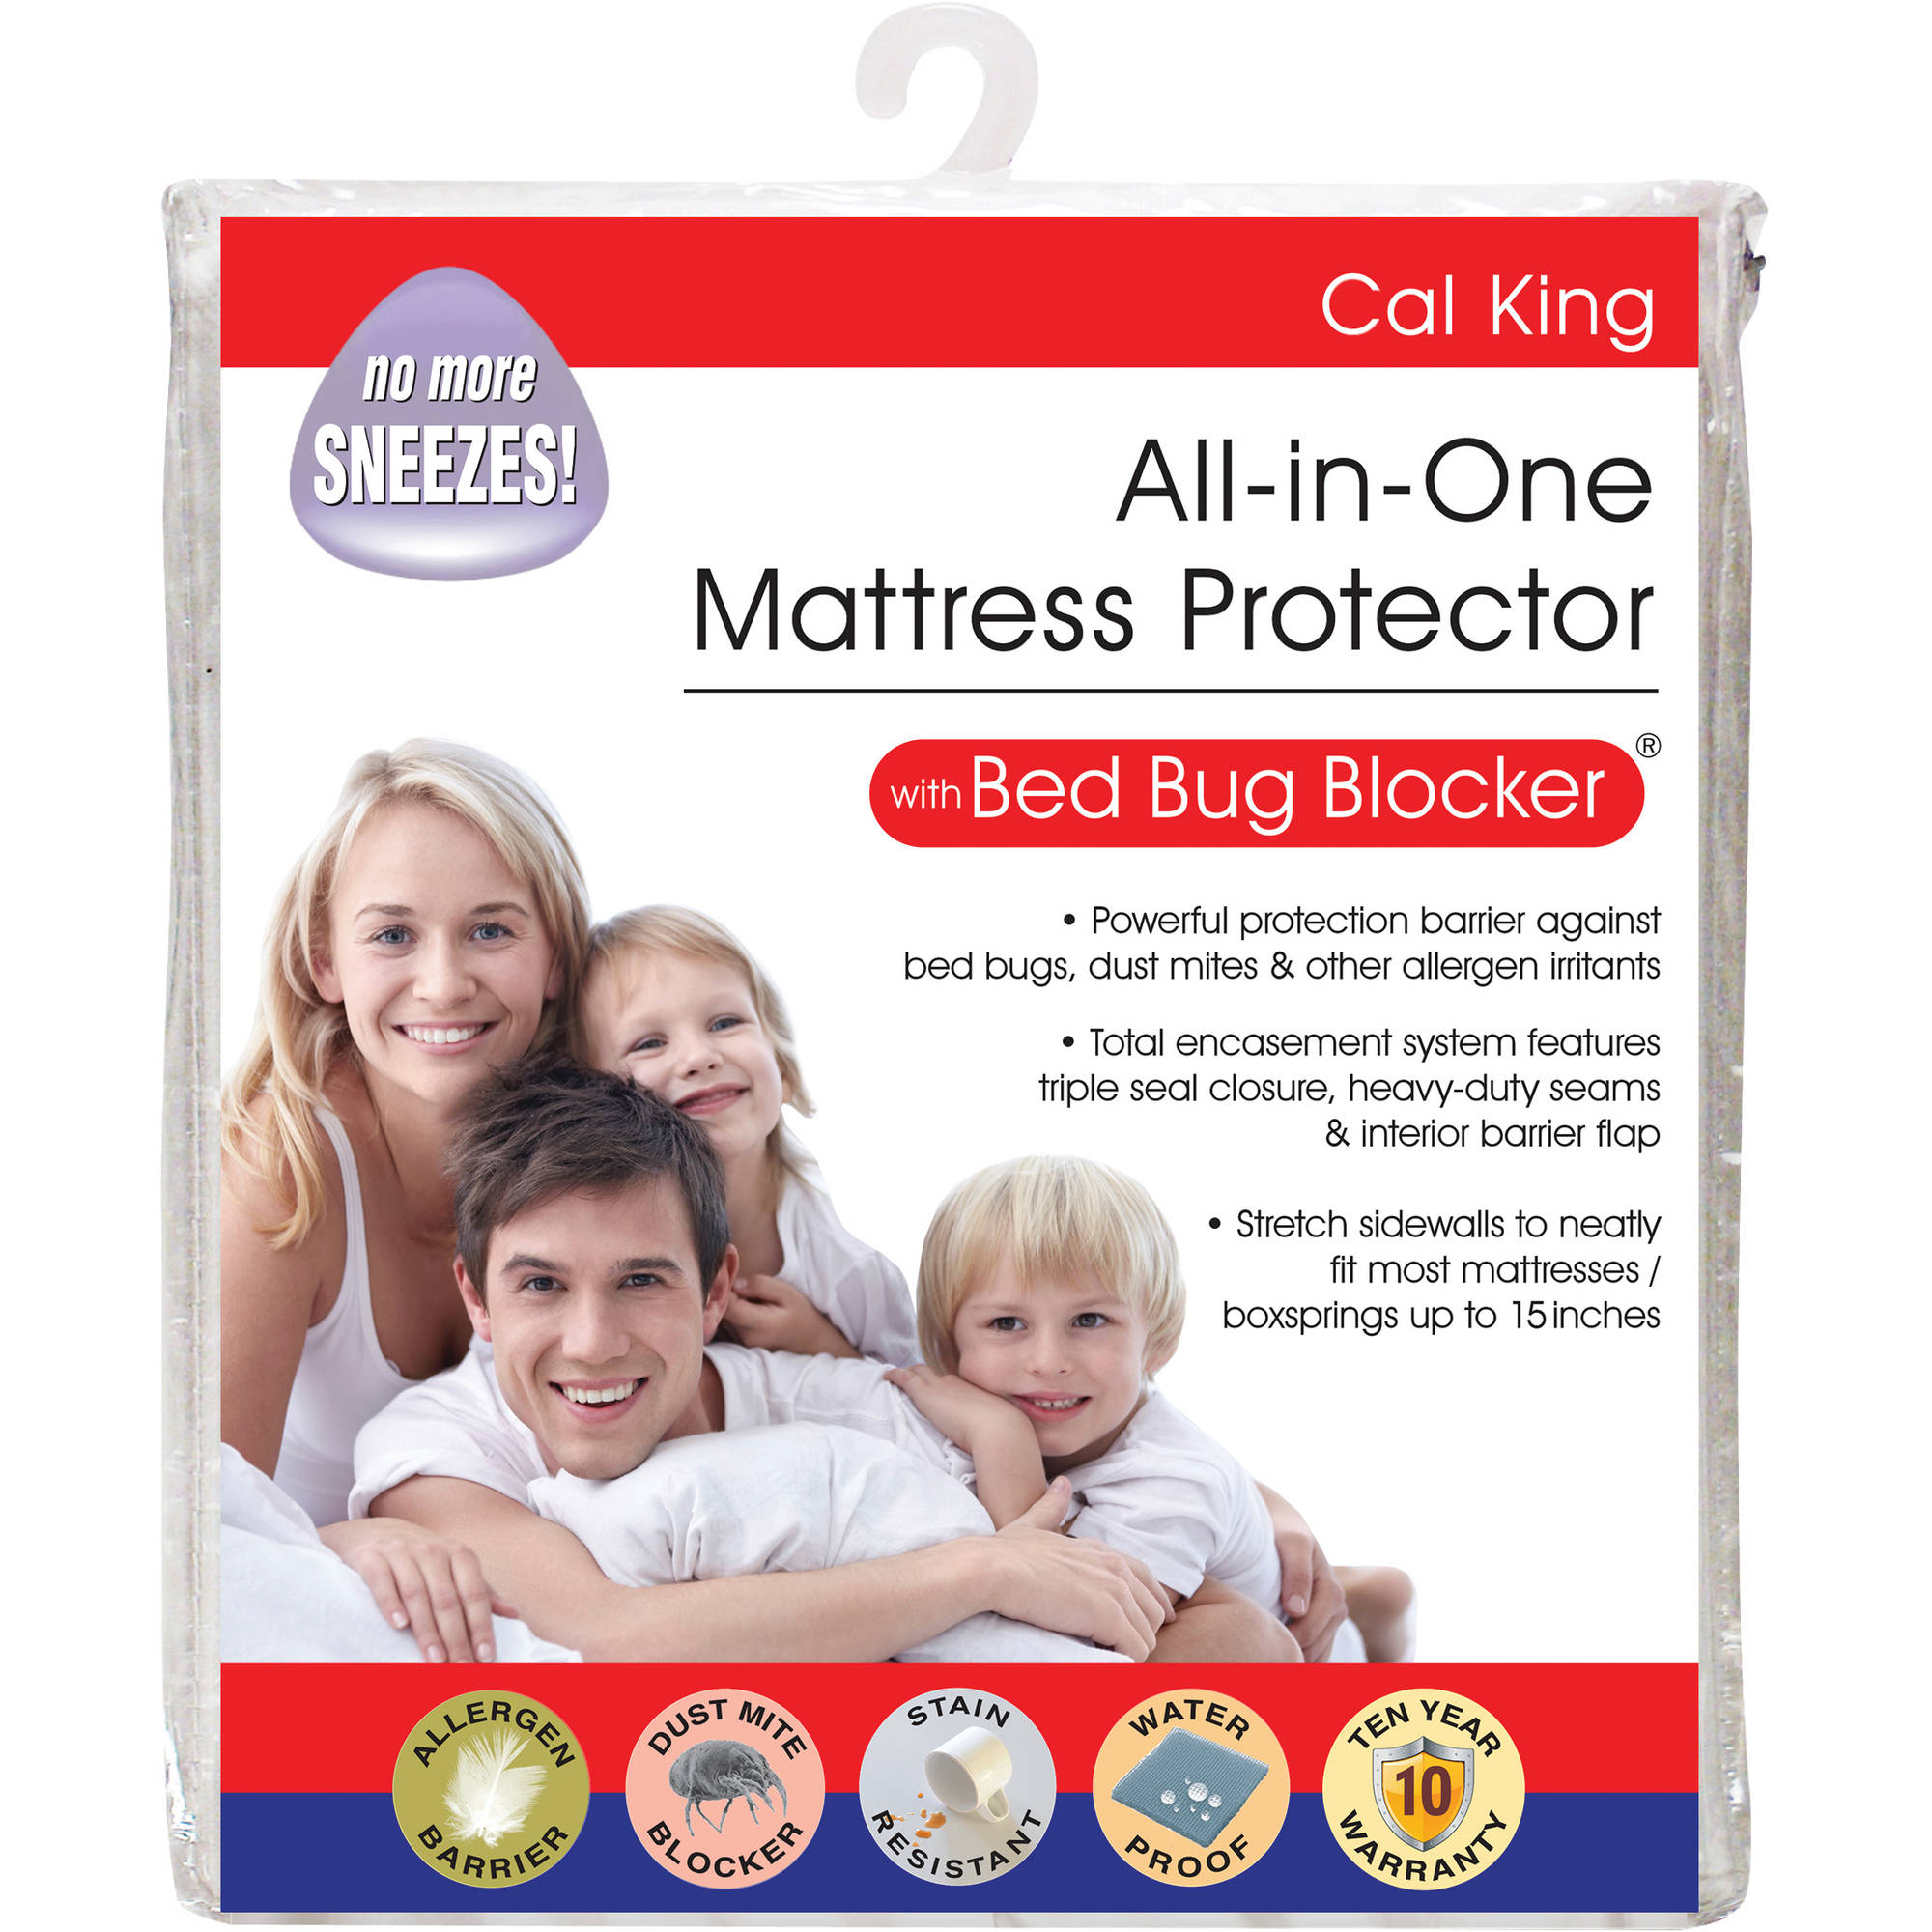 Luxury Cotton Rich Bed Bug Blocker Zippered Mattress Protector